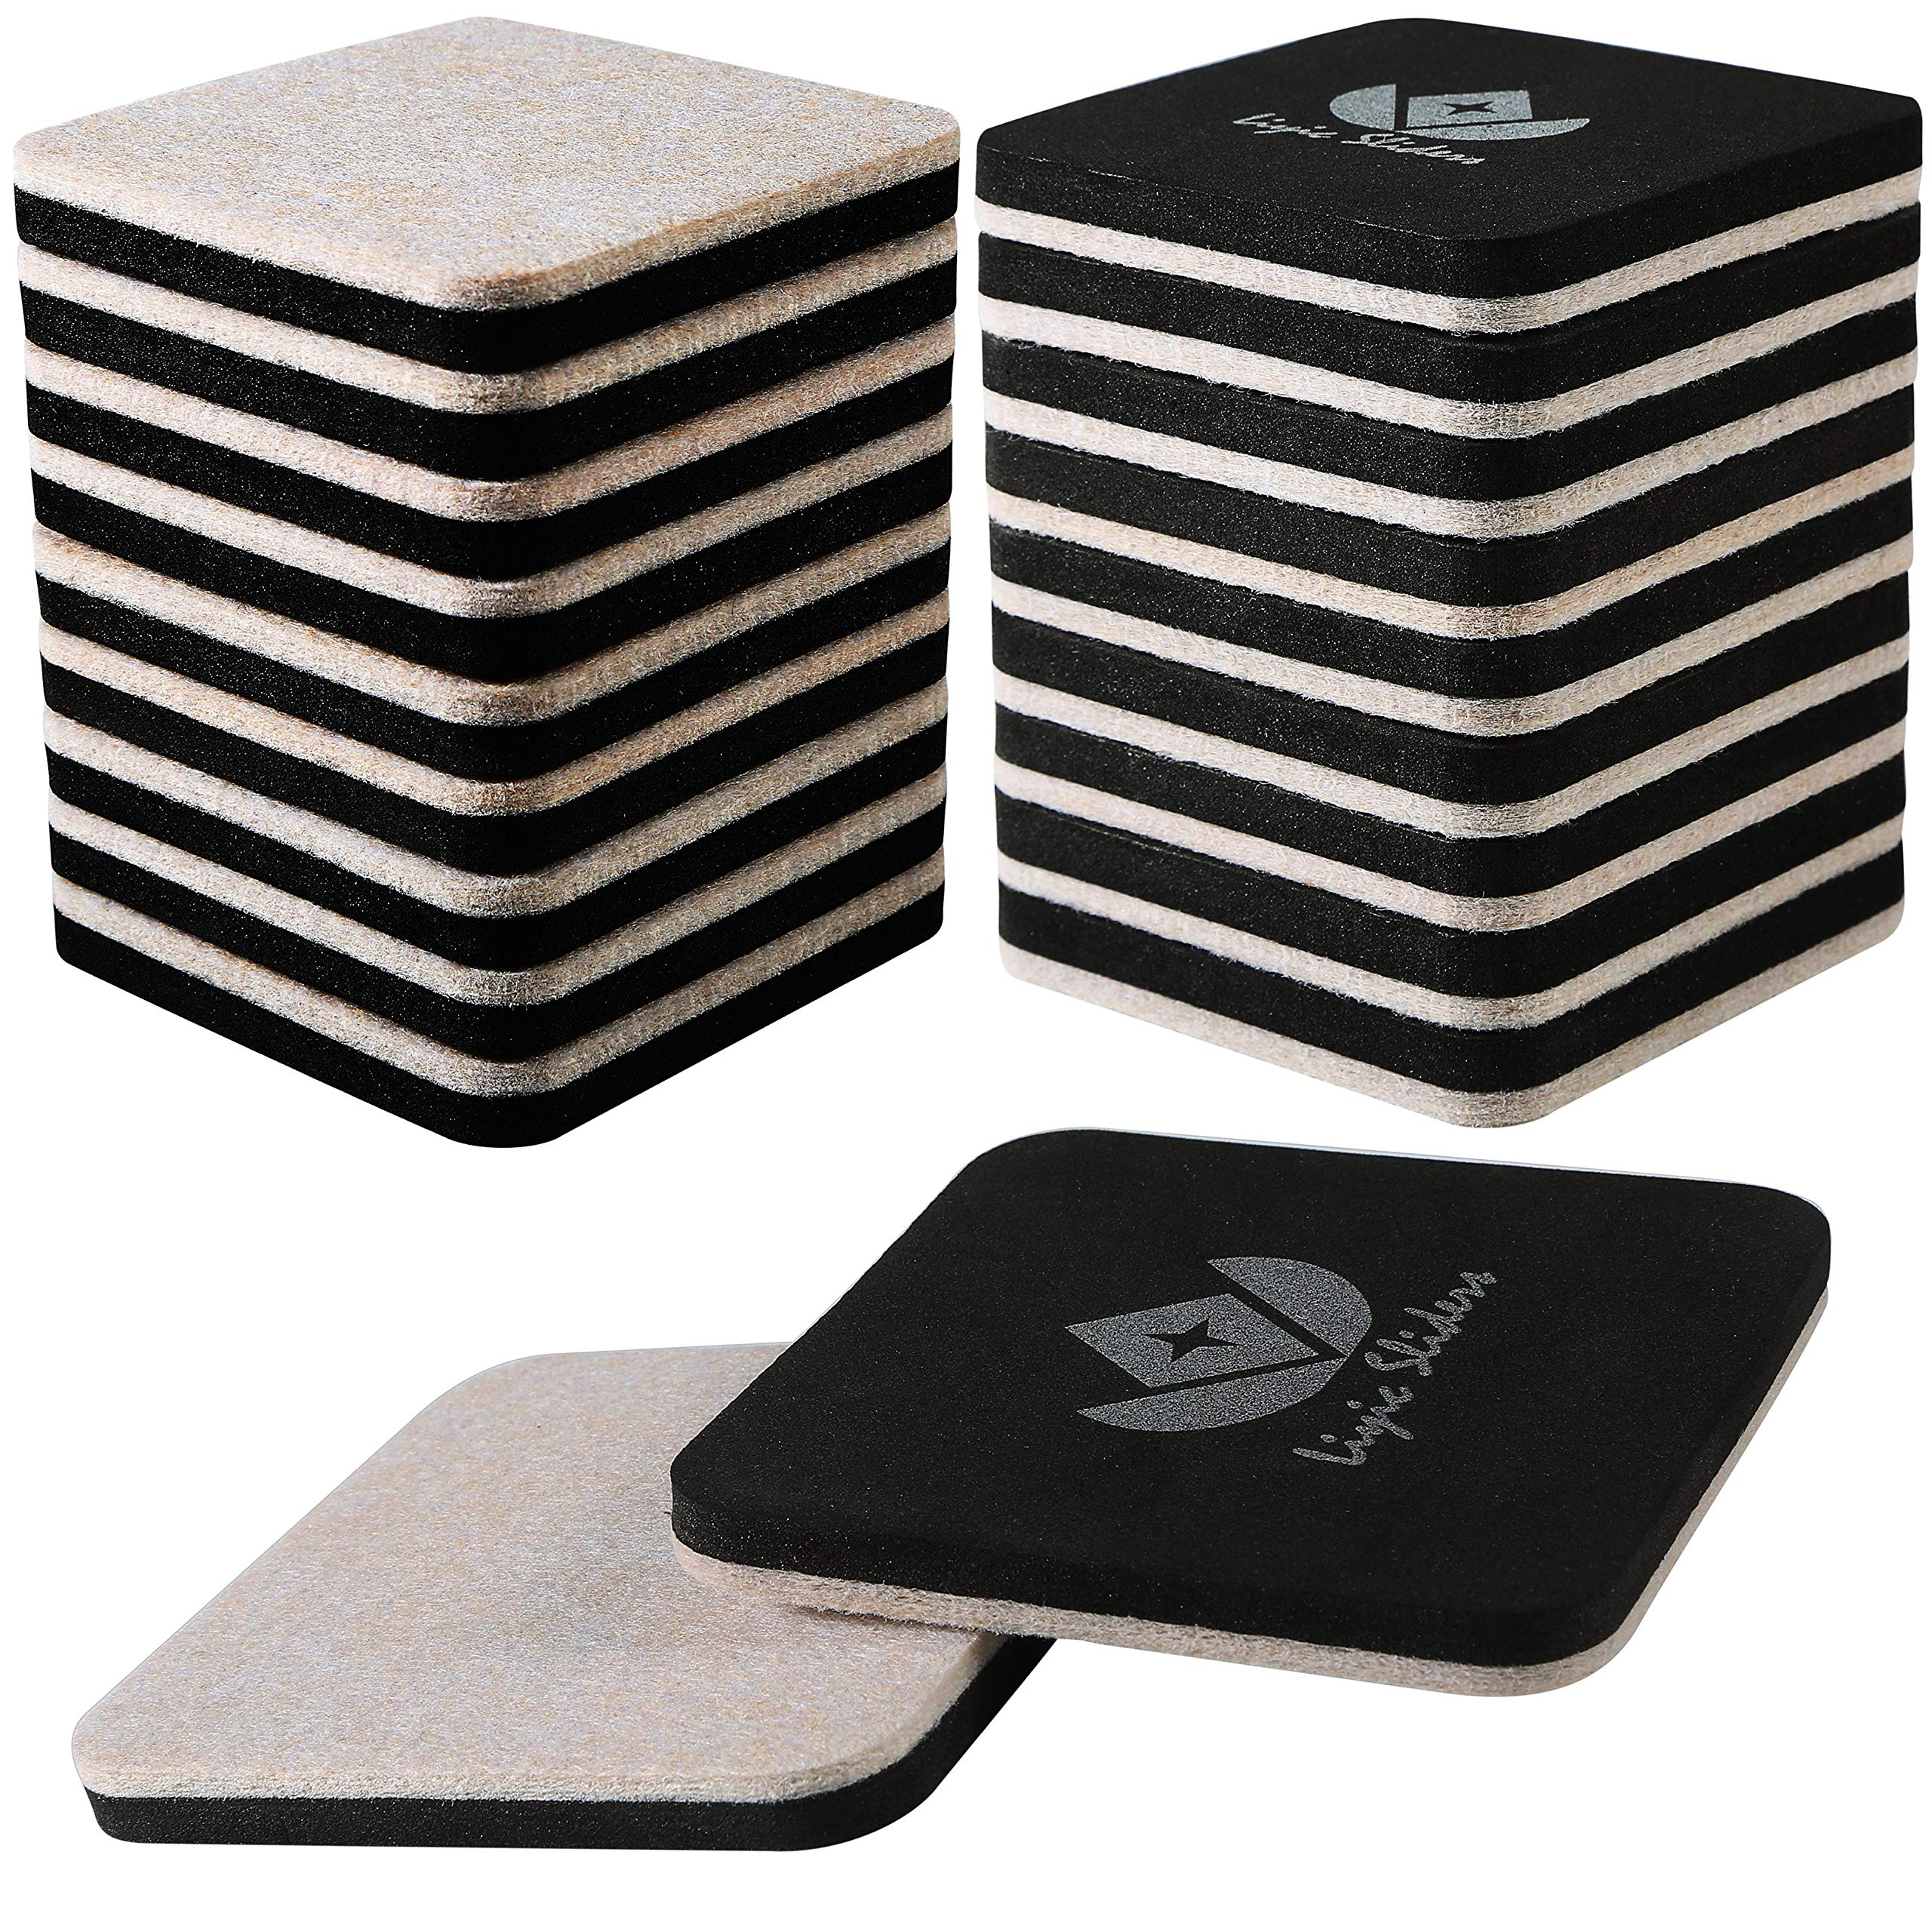 Liyic 20 Pack 3in.Square Felt Sliders for Hard Surfaces-Felt Furniture Sliders - Heavy Duty Sliders – Reusable Hardwood Floor Sliders -Furniture Moving Sliders-Sofa Sliders Gliders Glides Movers